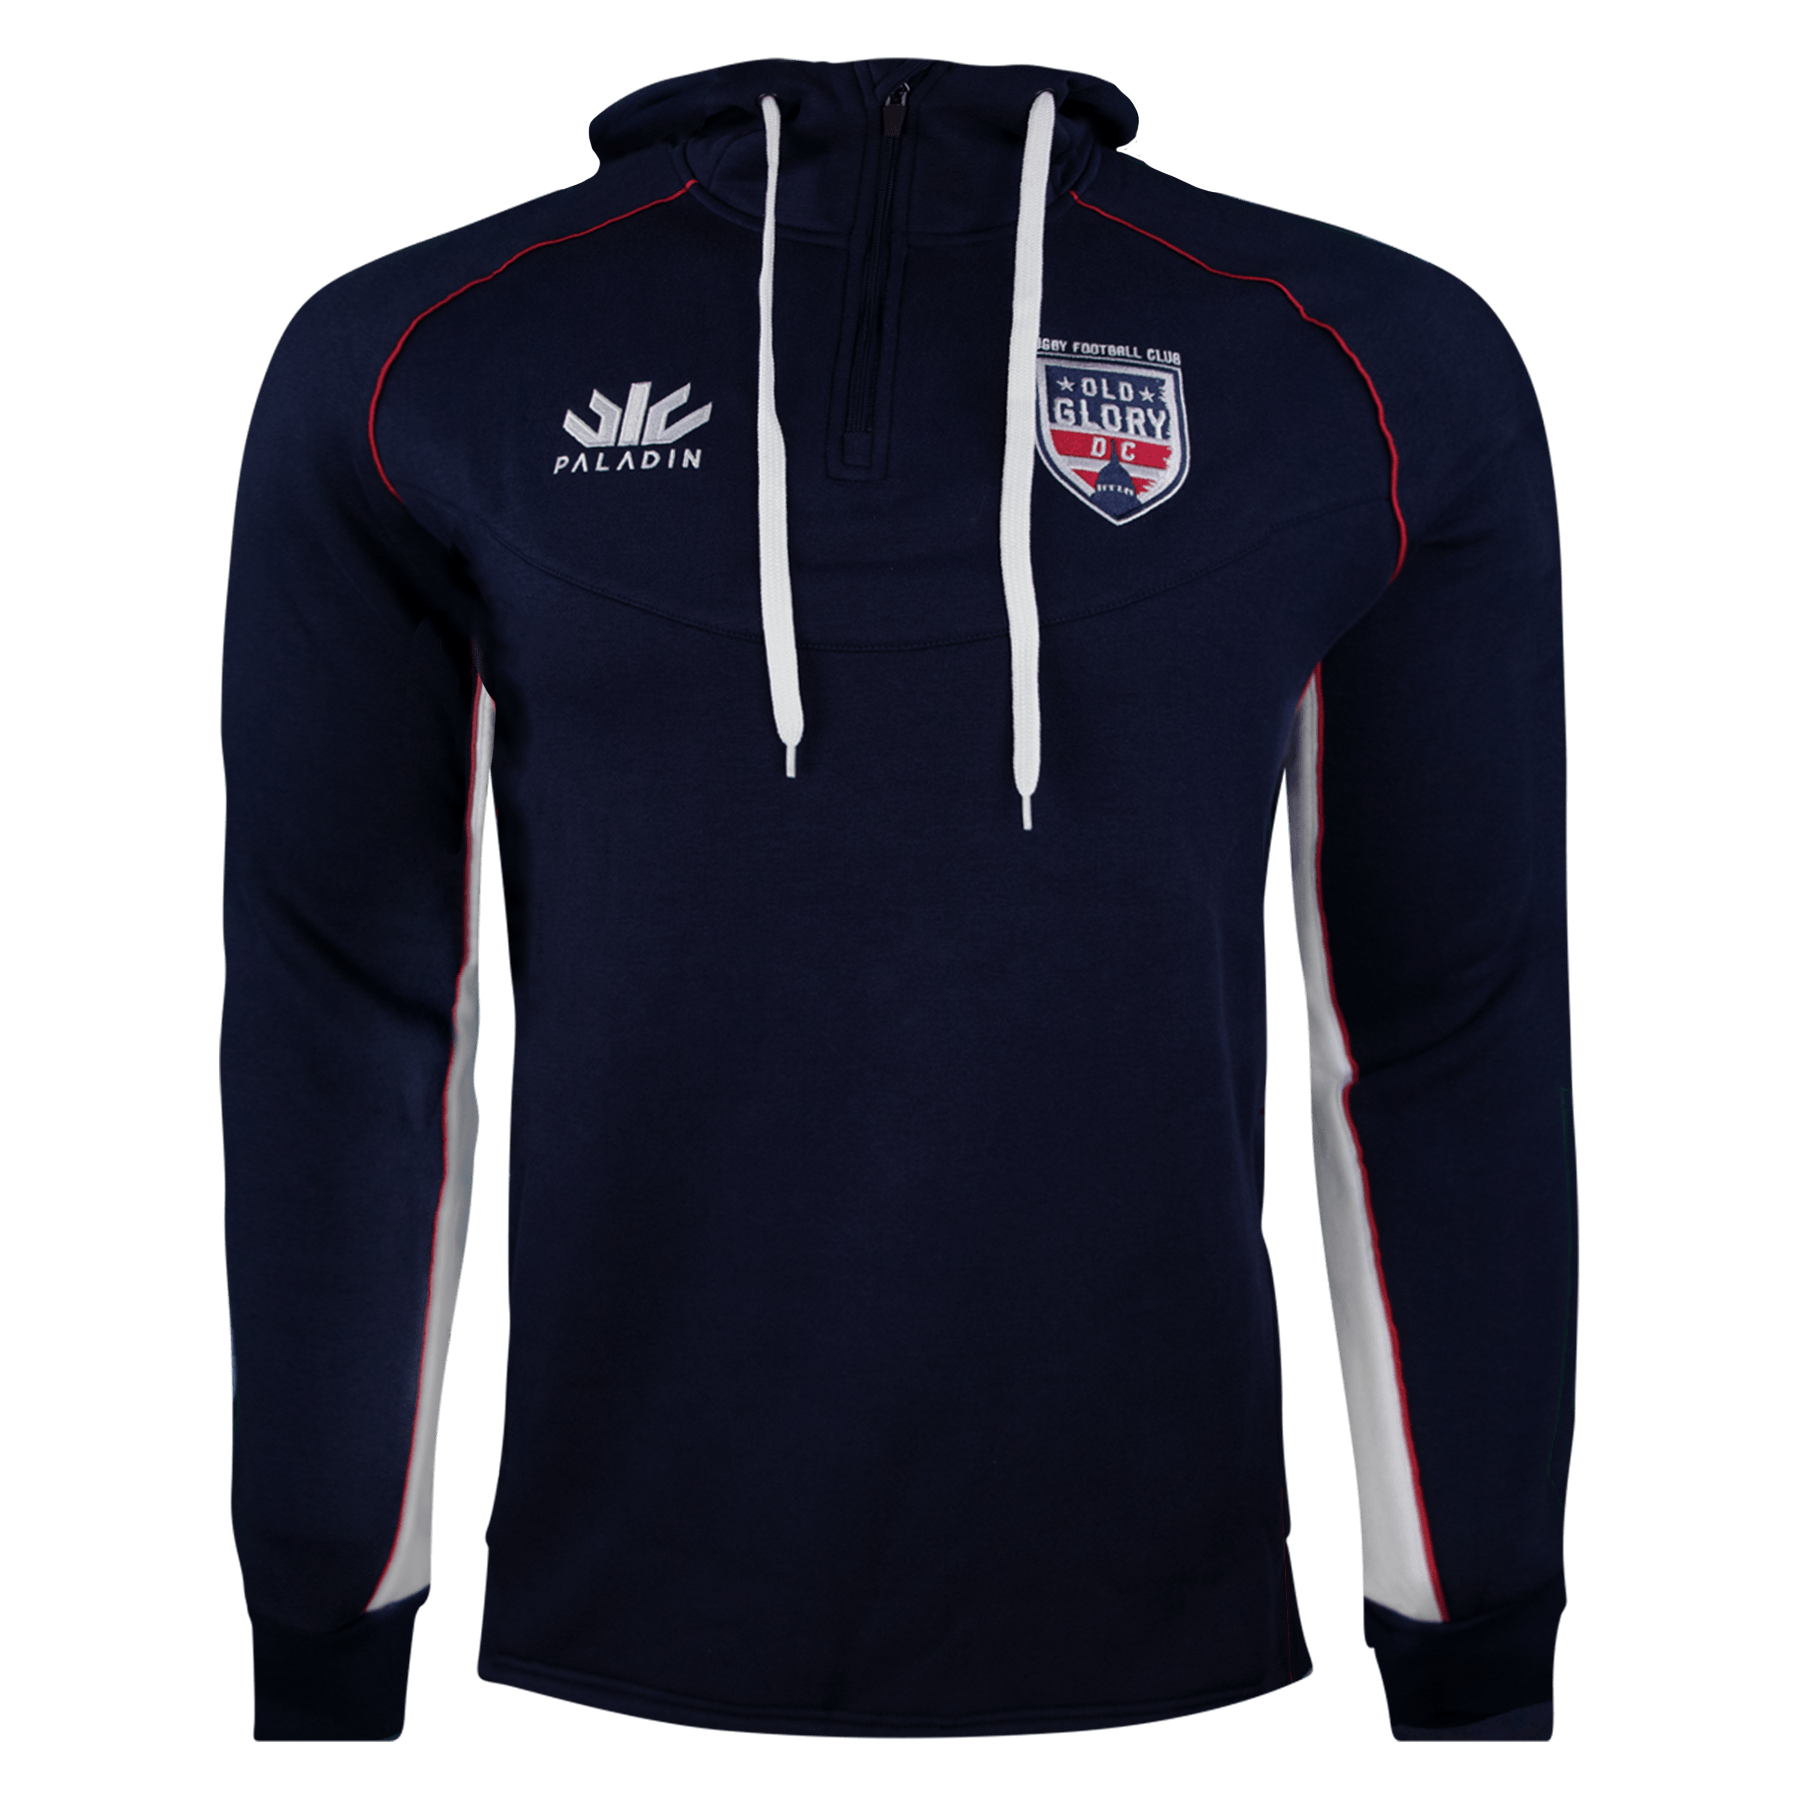 Paladin Old Glory DC Rugby Hoodie Navy With Red & White Detail